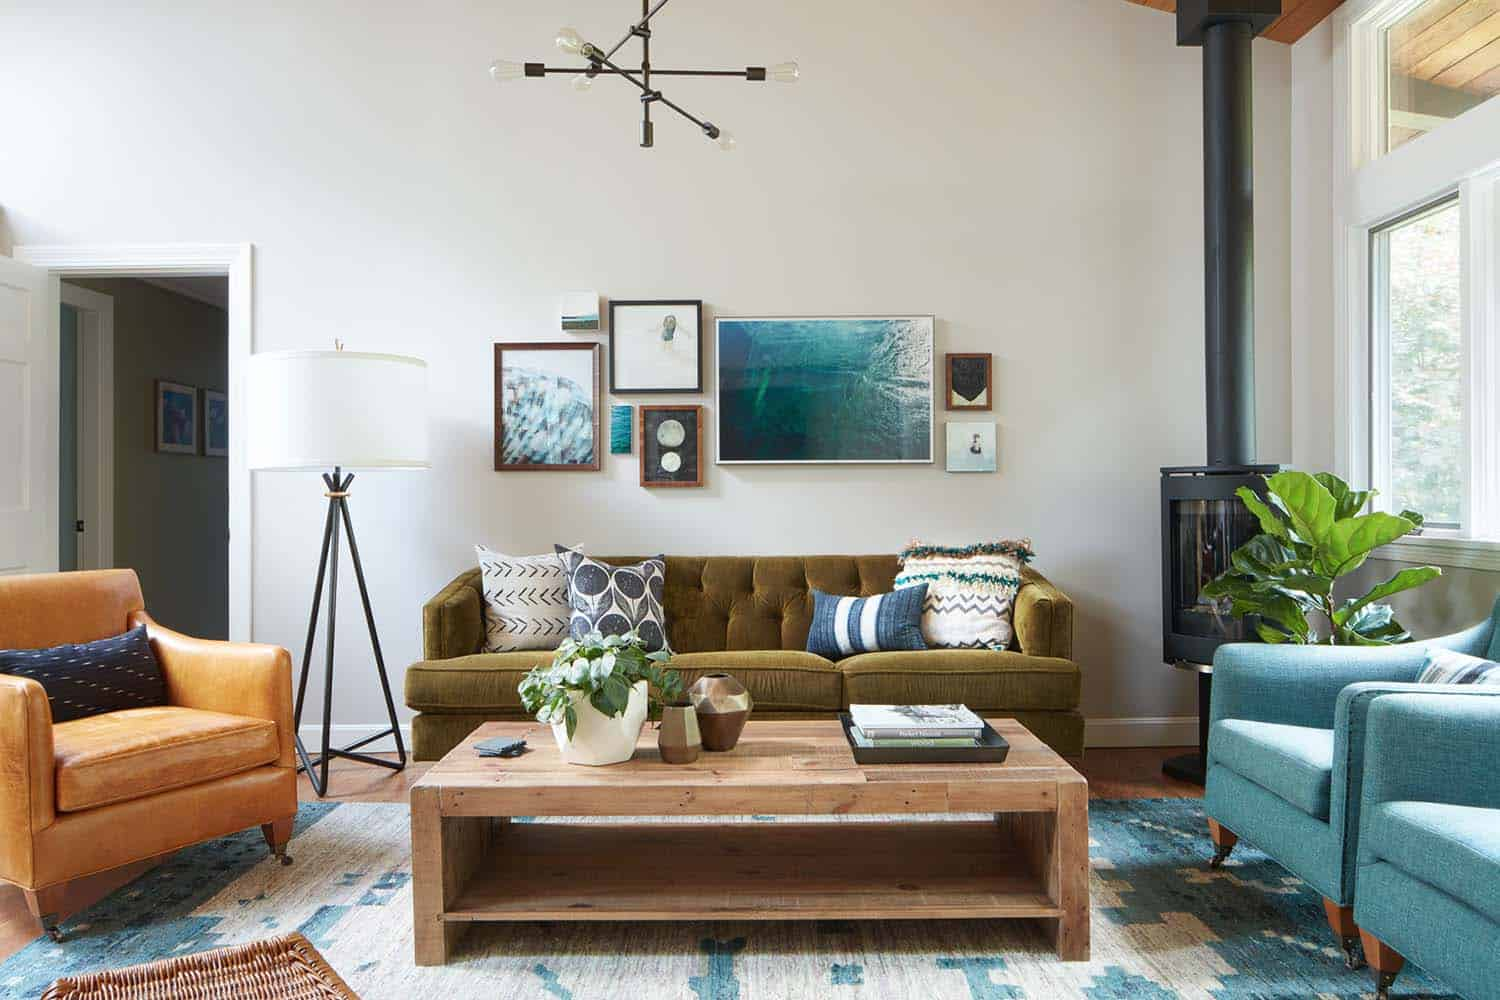 A New England home gets infused with a West Coast coastal vibe